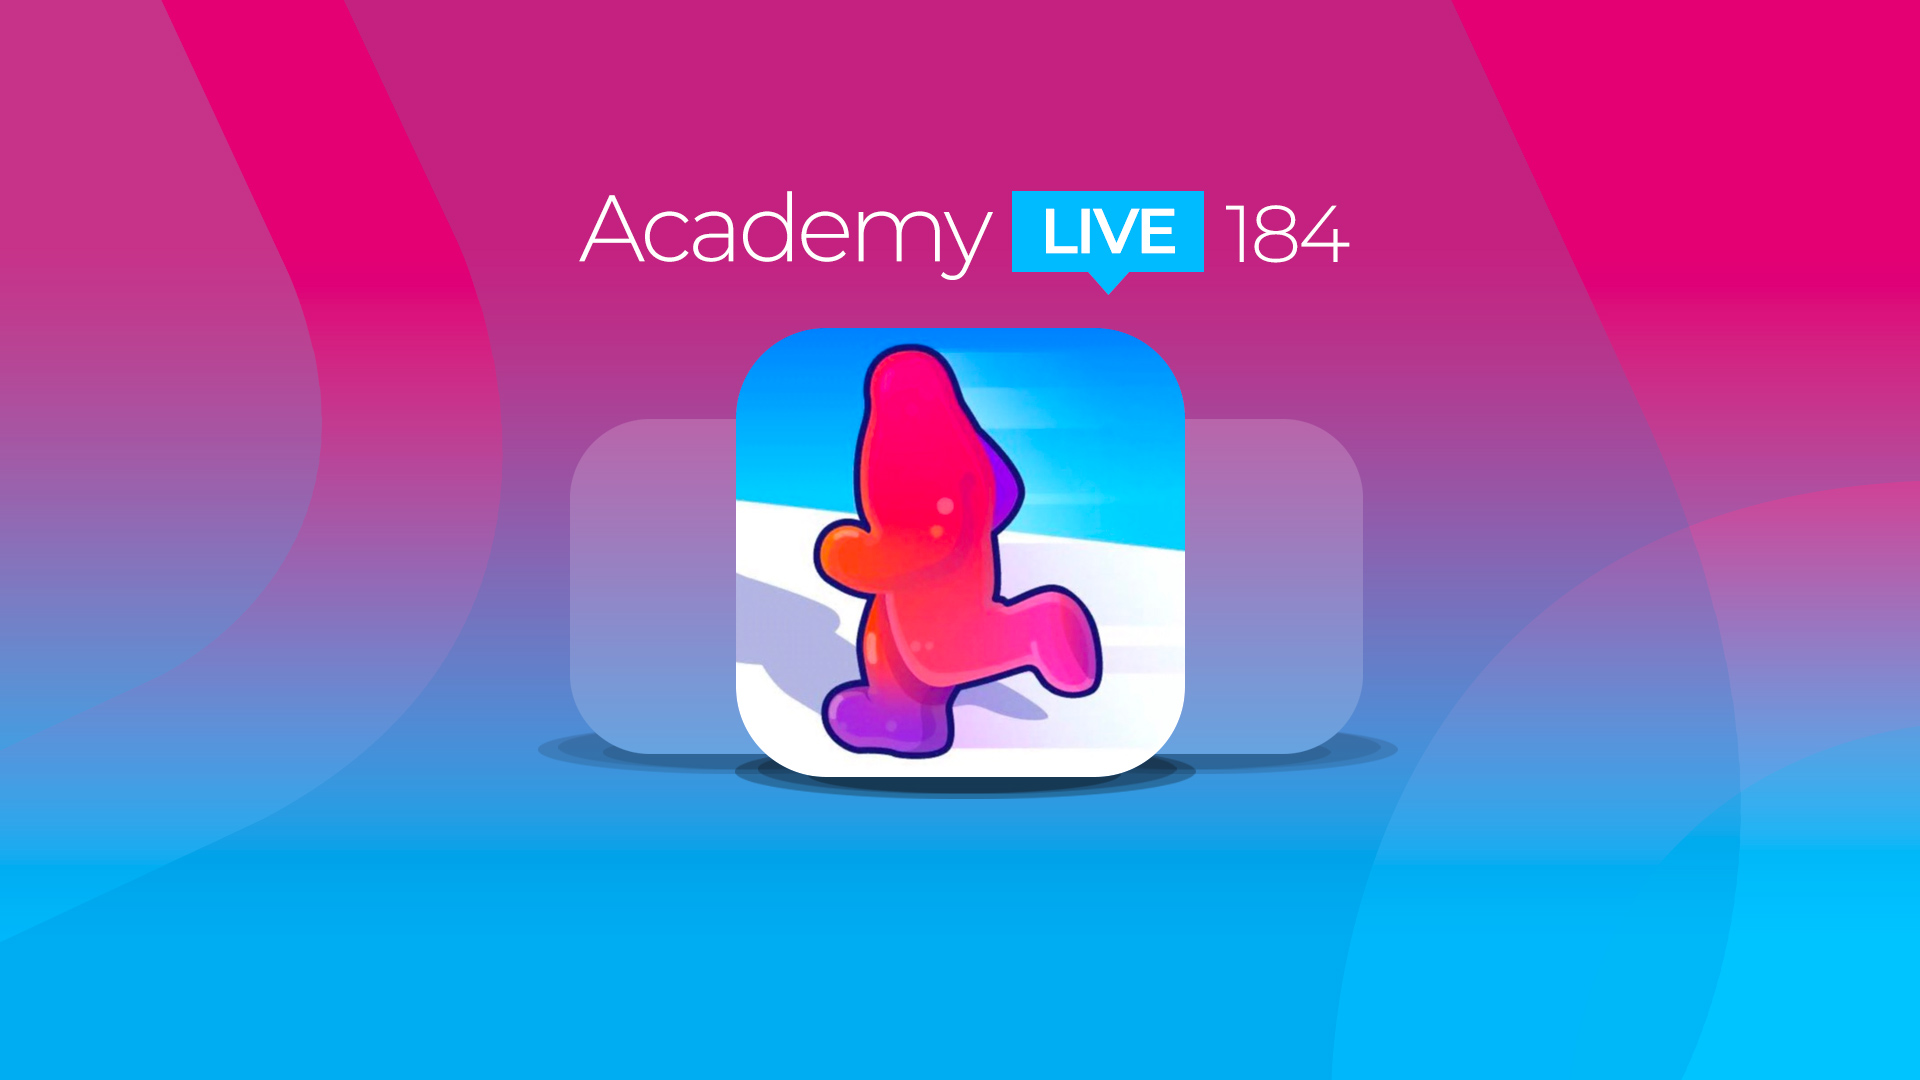 Academy Live 184: Blob Runner, Tricky Trap 3D, Rock Crawling